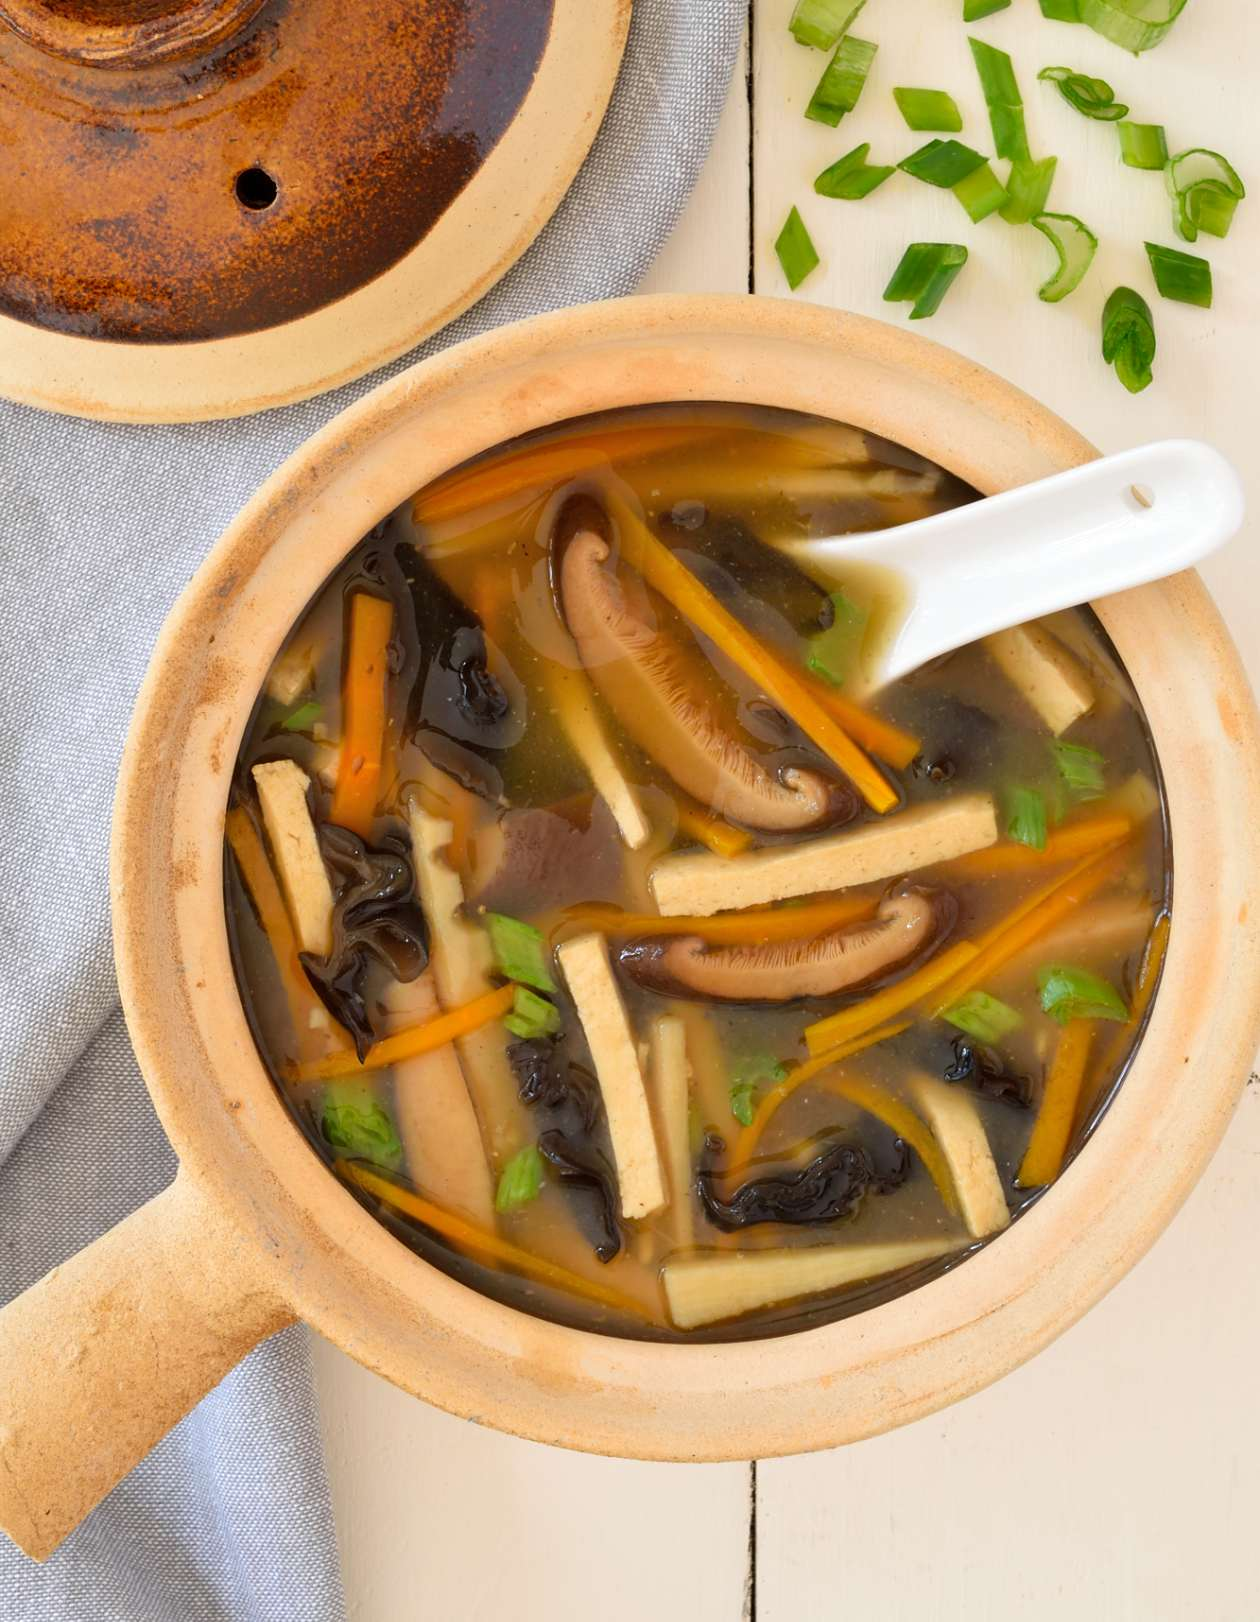 Vegan hot and sour soup is just as tasty as takeout and guaranteed to be totally plant-based. Great for a chilly fall or winter evening, this soup is ready in only 40 minutes